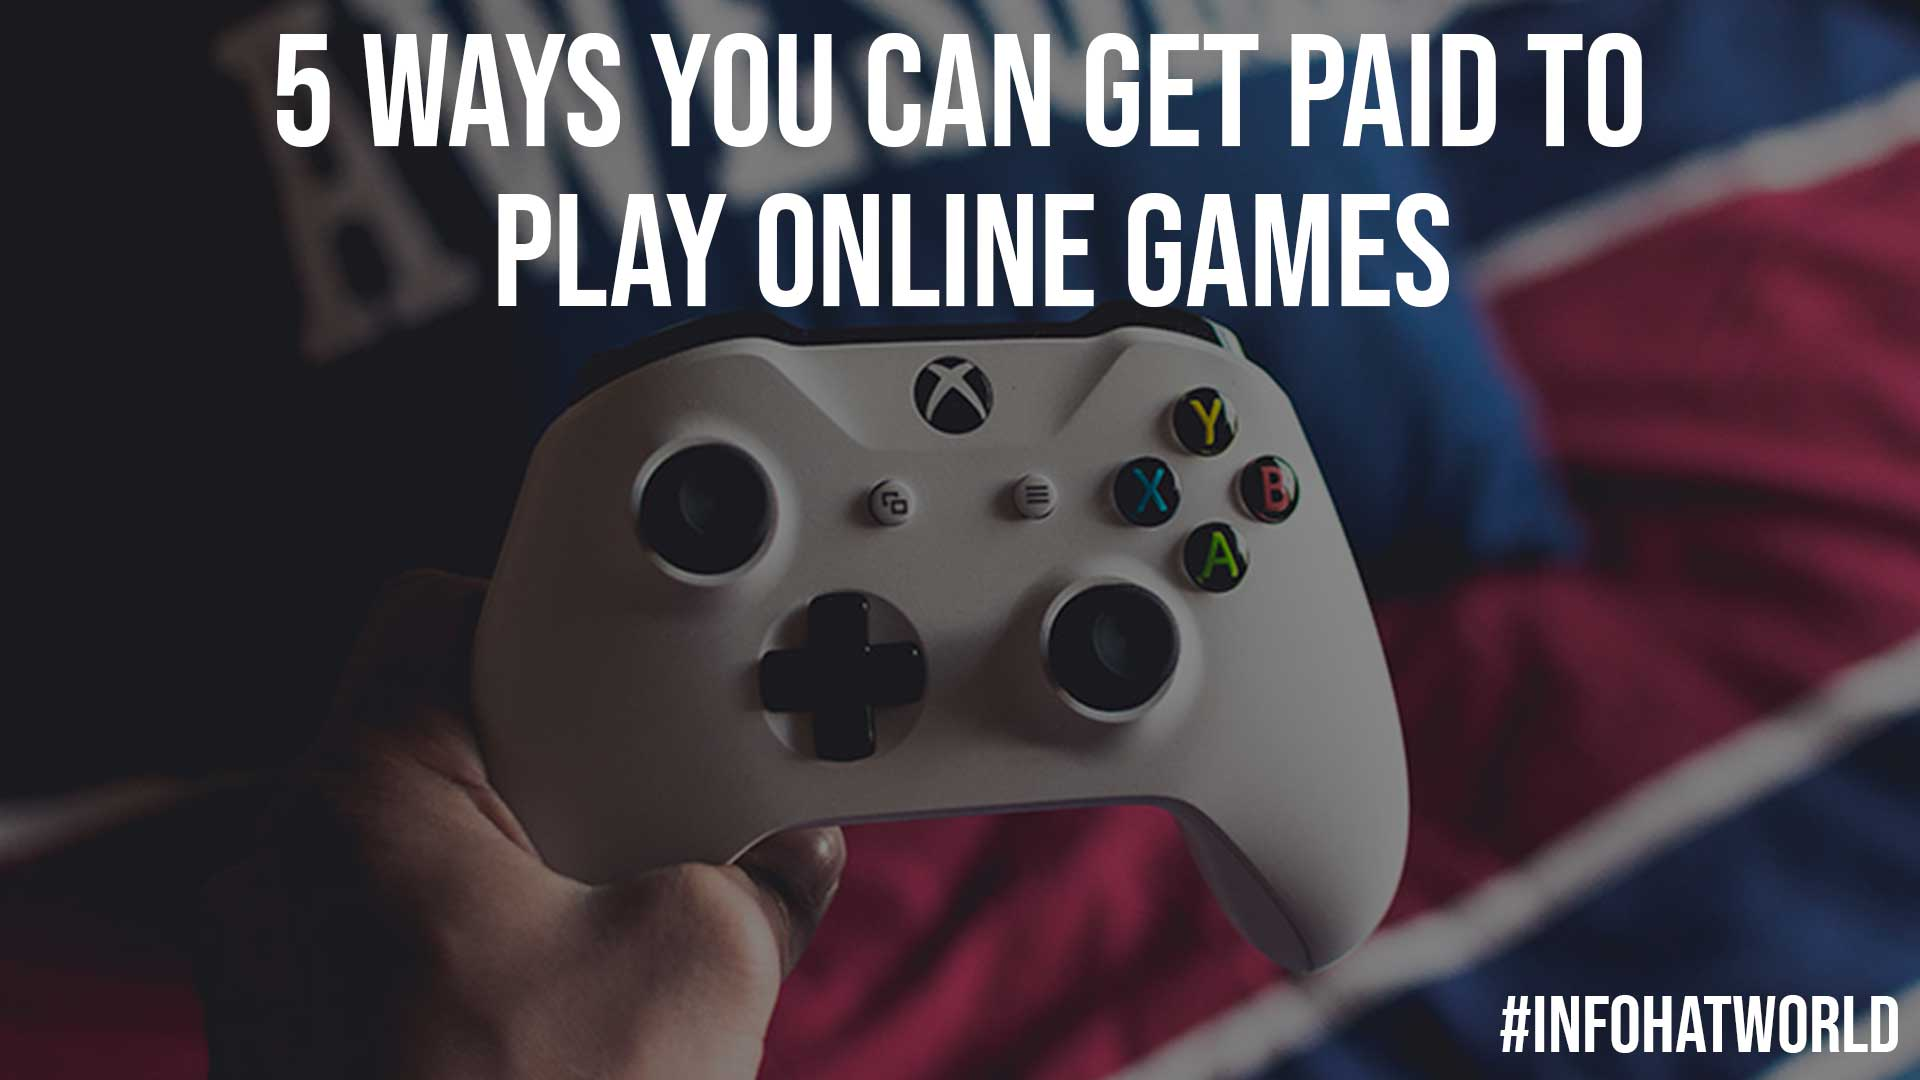 5 Ways You Can Get Paid to Play Online Games